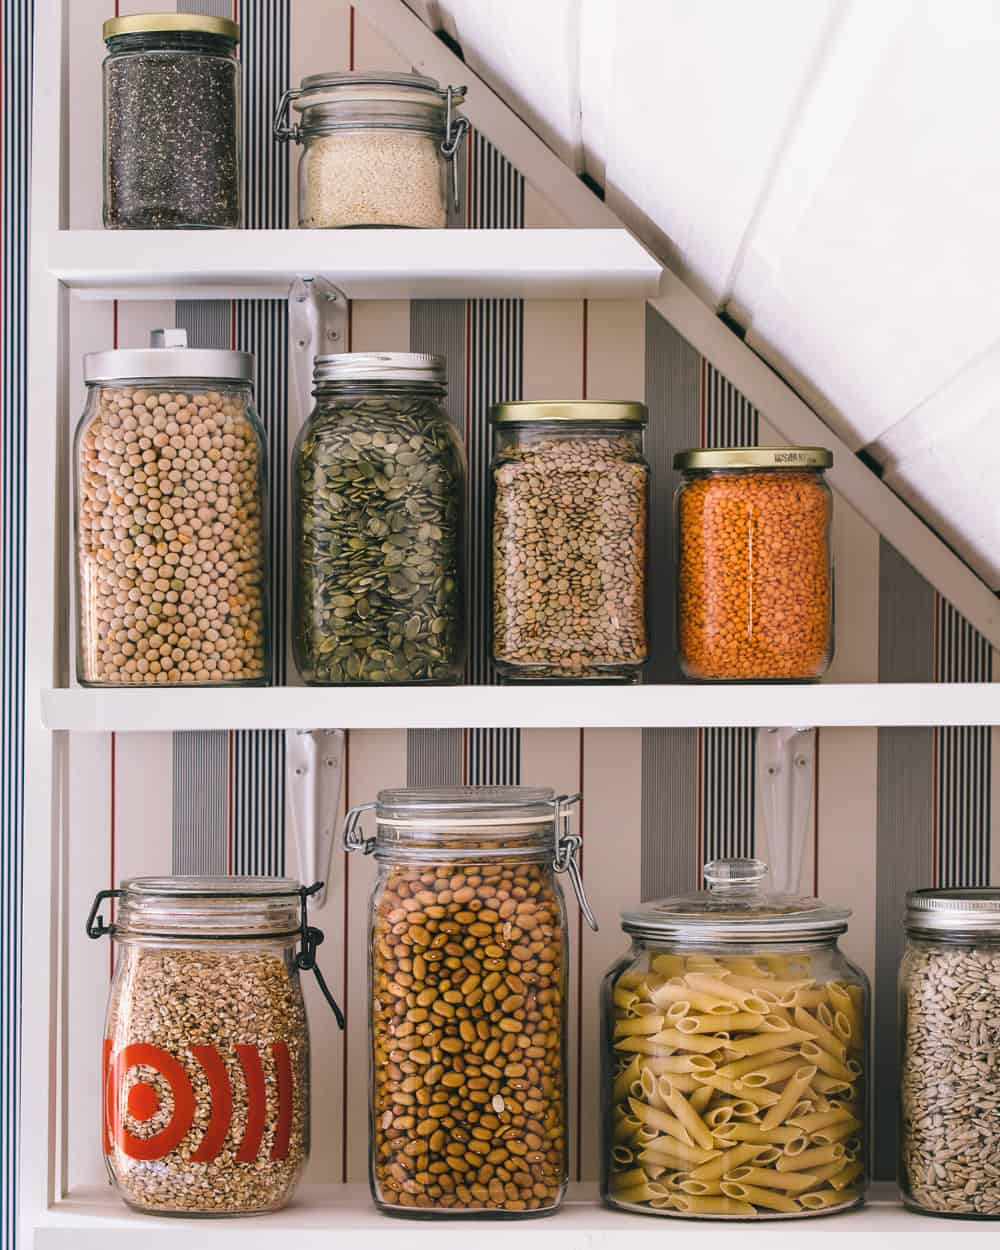 Jars of pantry items on a shelf.